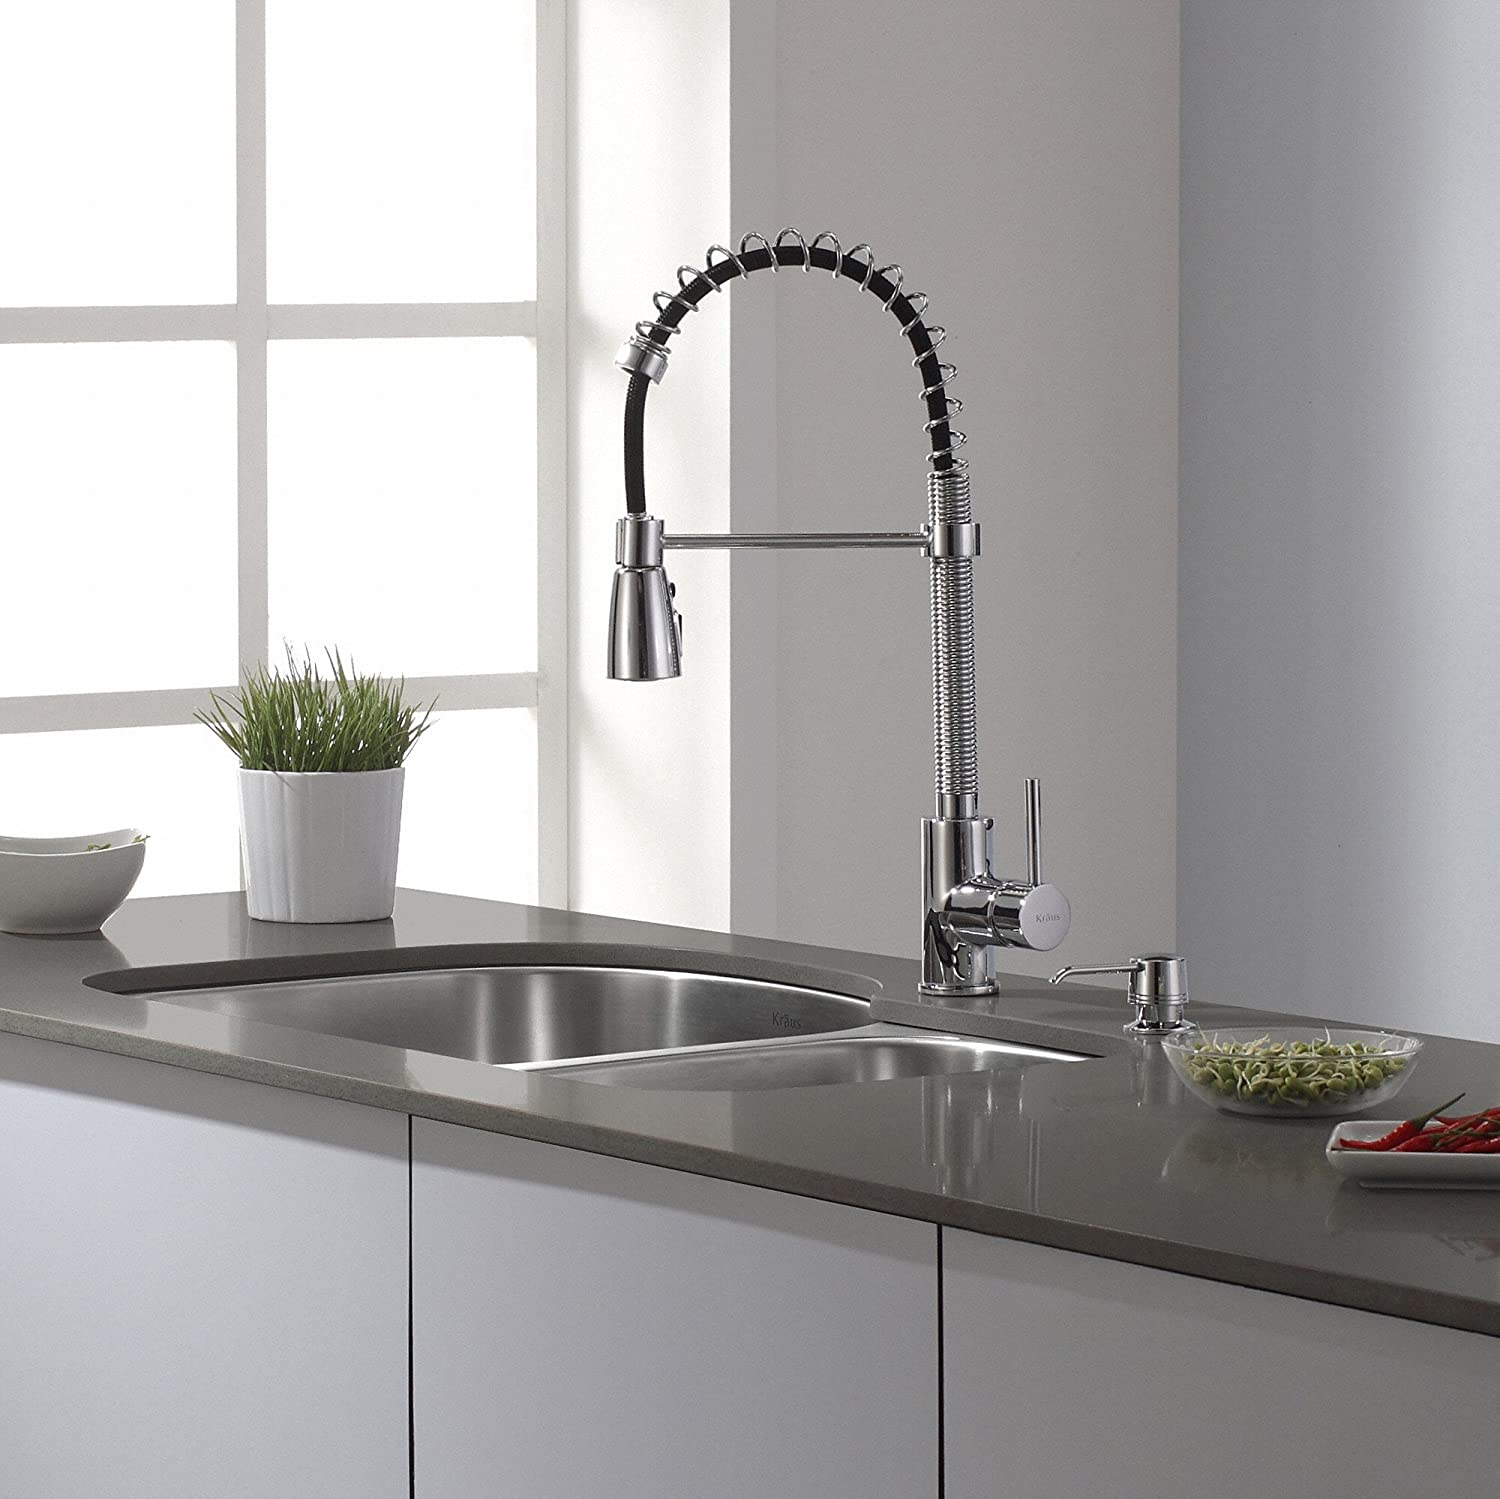 Kraus KPF 1612 Single Lever Pull Down Kitchen Faucet Chrome   Touch On  Kitchen Sink Faucets   Amazon.com